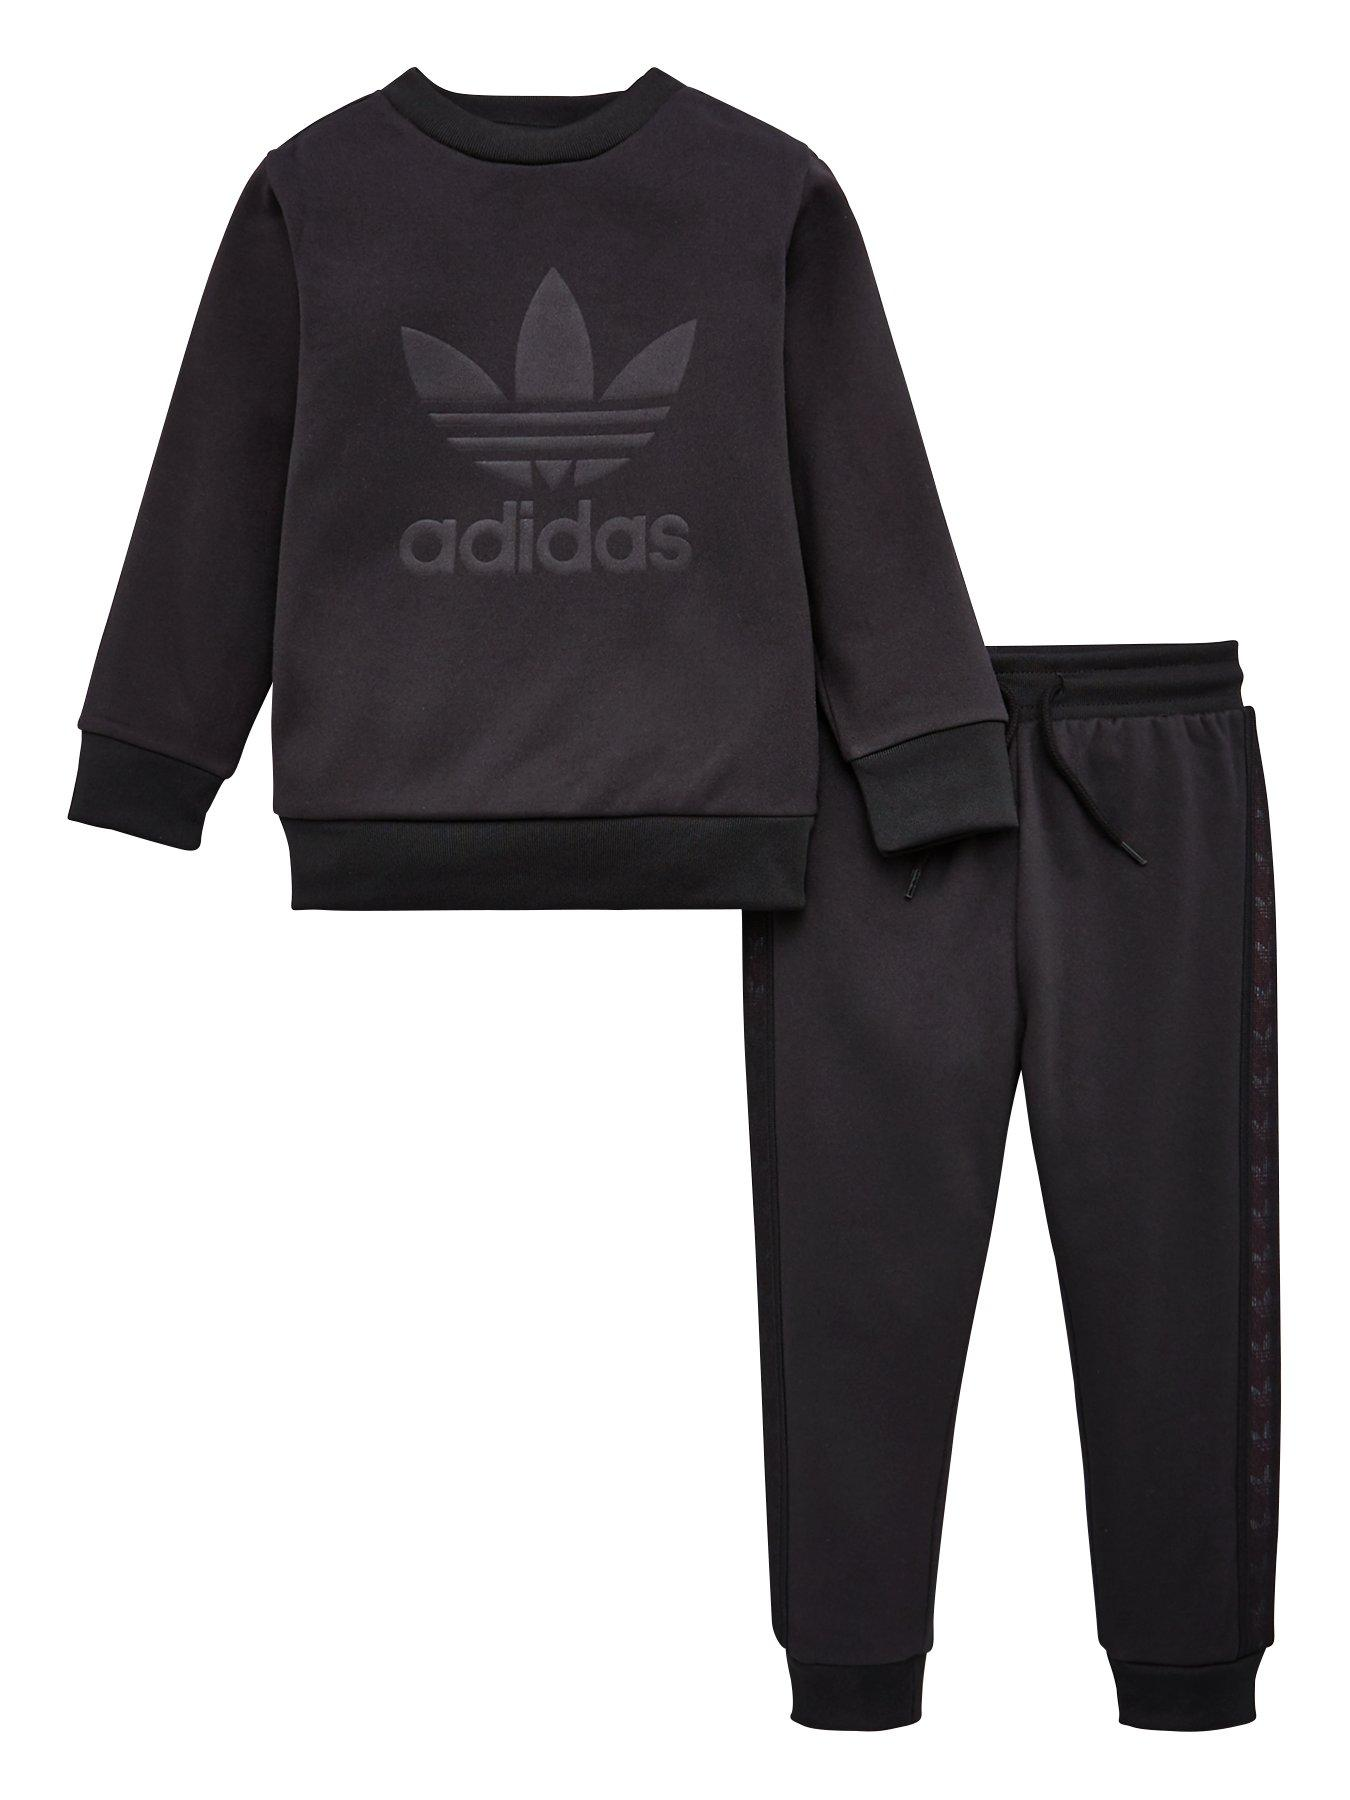 Adidas | Boys clothes | Child & baby | very.co.uk